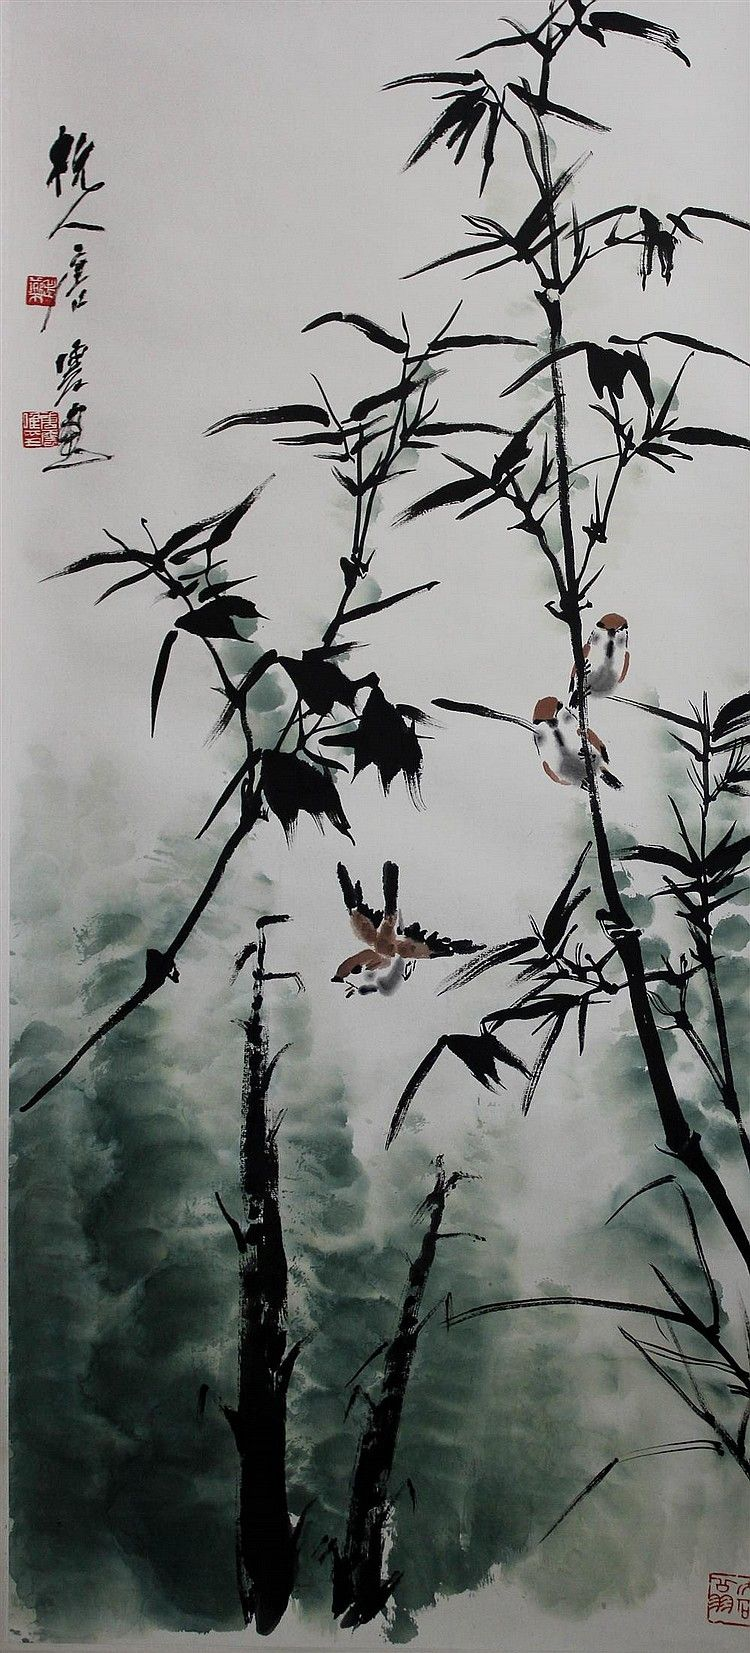 """TANG YUN (CHINESE, 1910-1993) BIRDS IN BAMBOO Ink and watercolor on silk hanging scroll: 38 x 17 1/2 in.Ink and watercolor on silk hanging scroll: 38 x 17 1/2 in.  Upper left in Chinese signed """"Hang Tang Yun"""" along with two seals, lower right seal 杭人唐雲畫/老藥/唐雲私印"""